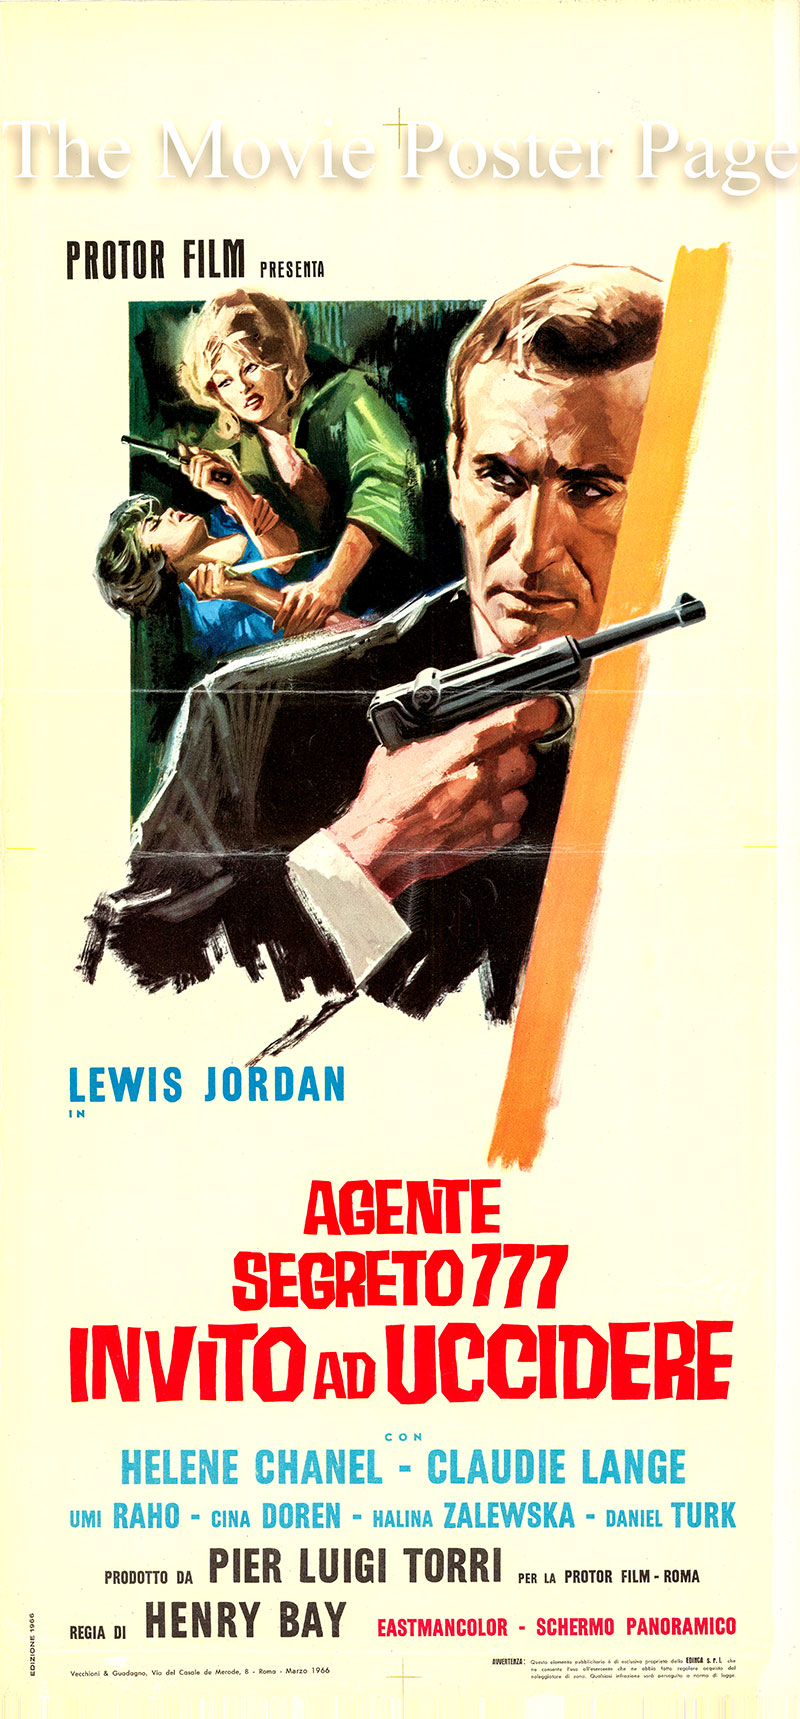 Pictured is an Italian locandina promotional poster for the 1967 Encroco Bomba film Ticket to Die starring Tiziano Cortini as Lewis Jordan, agente 777.